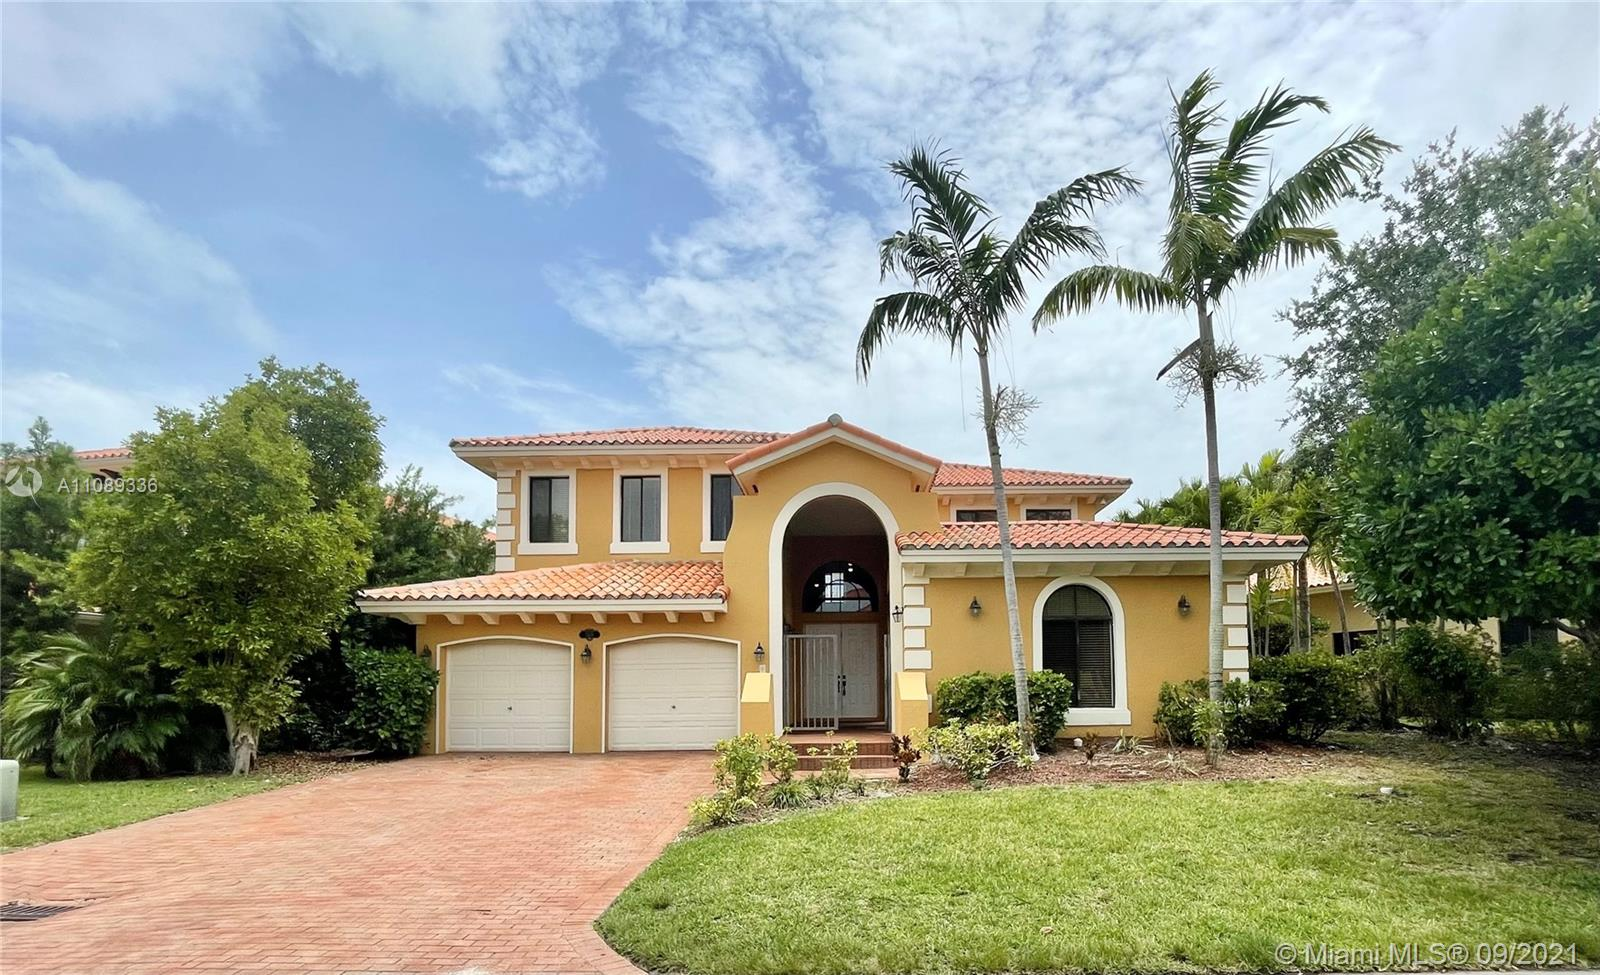 7428 SW 189th St  For Sale A11089336, FL